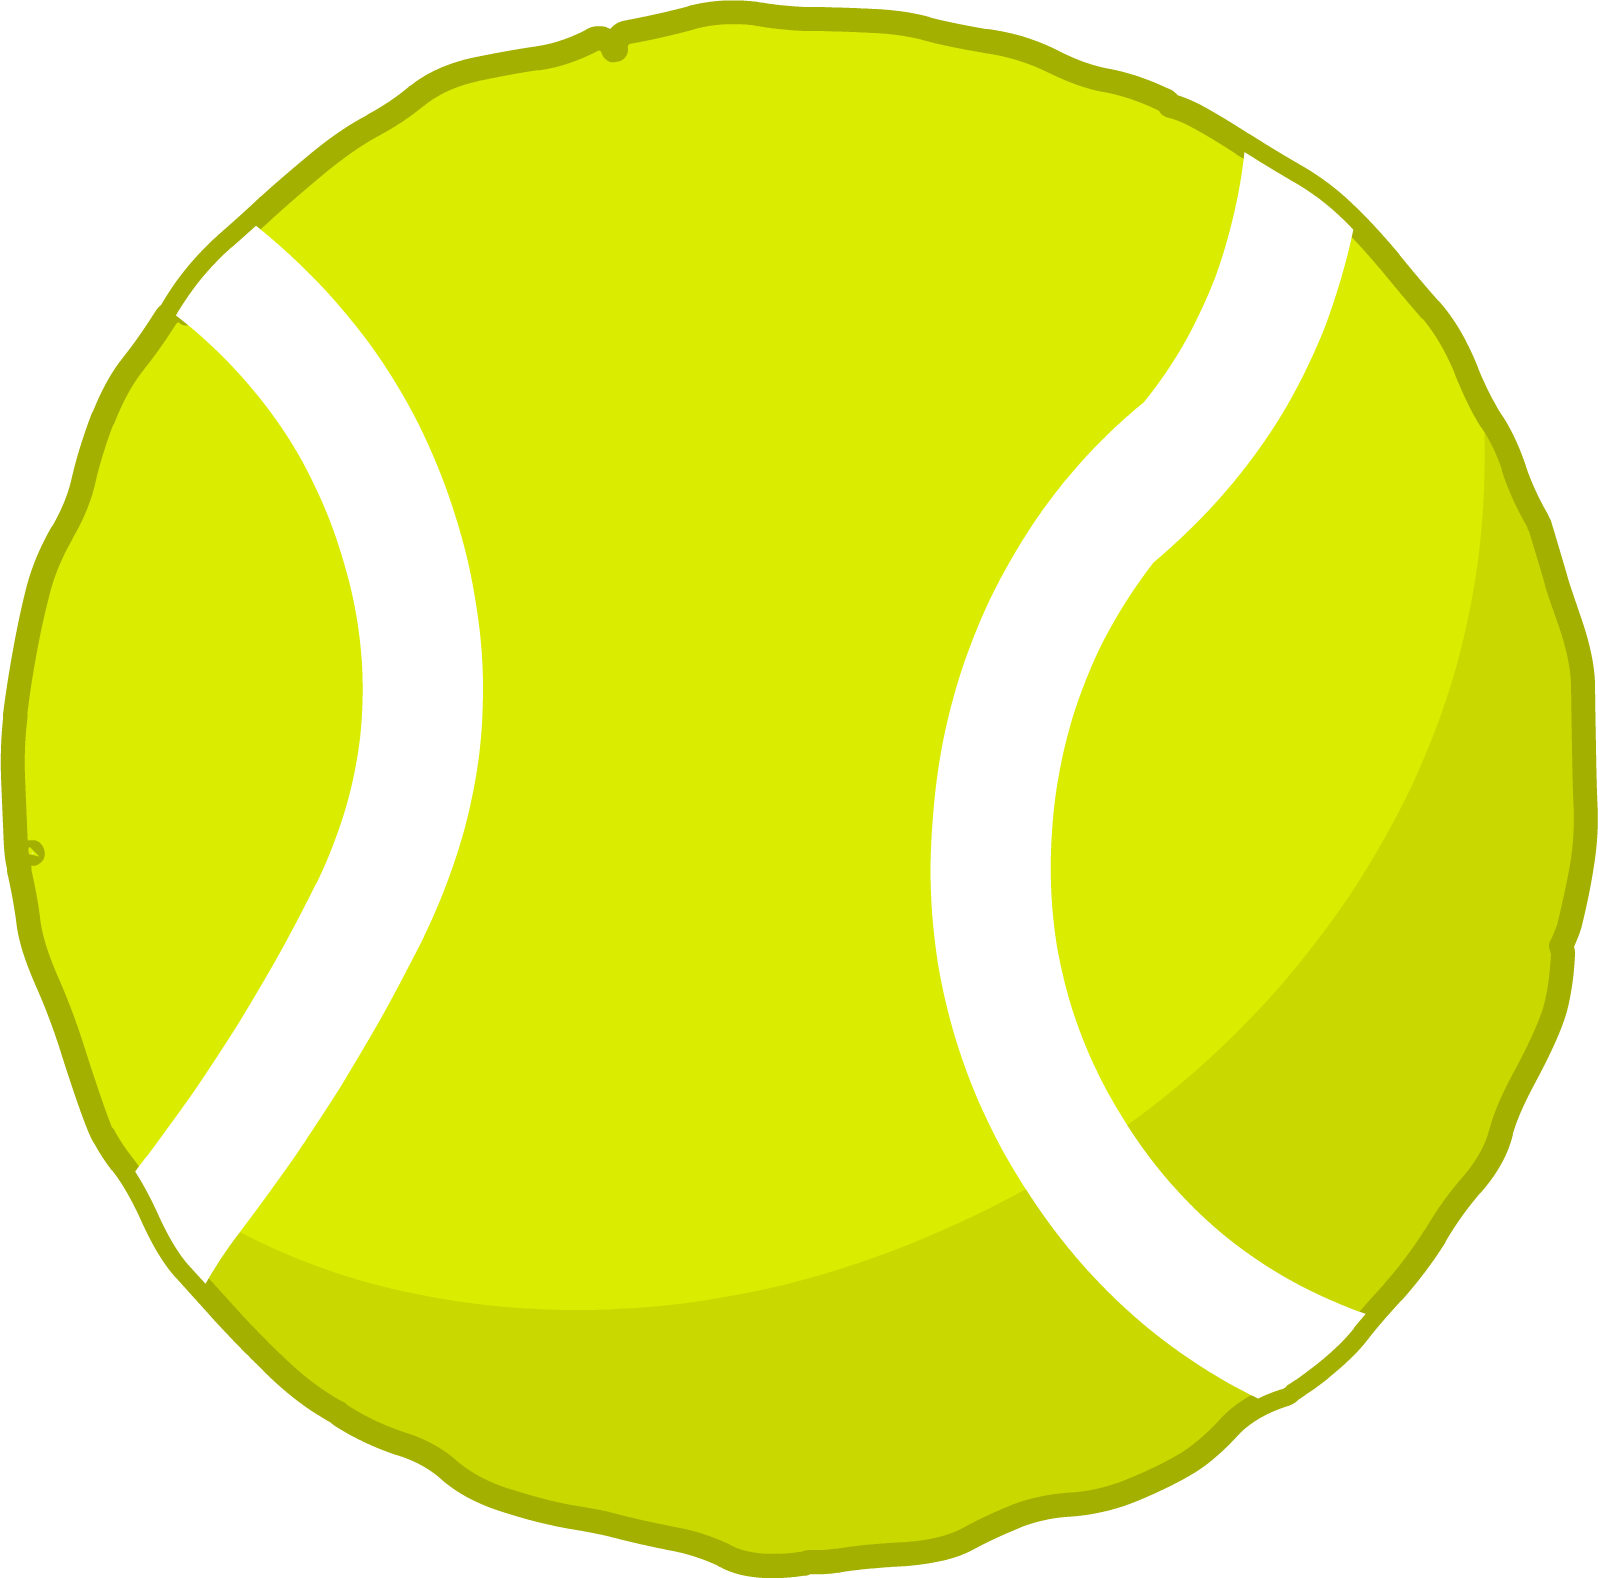 image tennis ball body png object shows community clipart tennis ball and racket clipart tennis ball